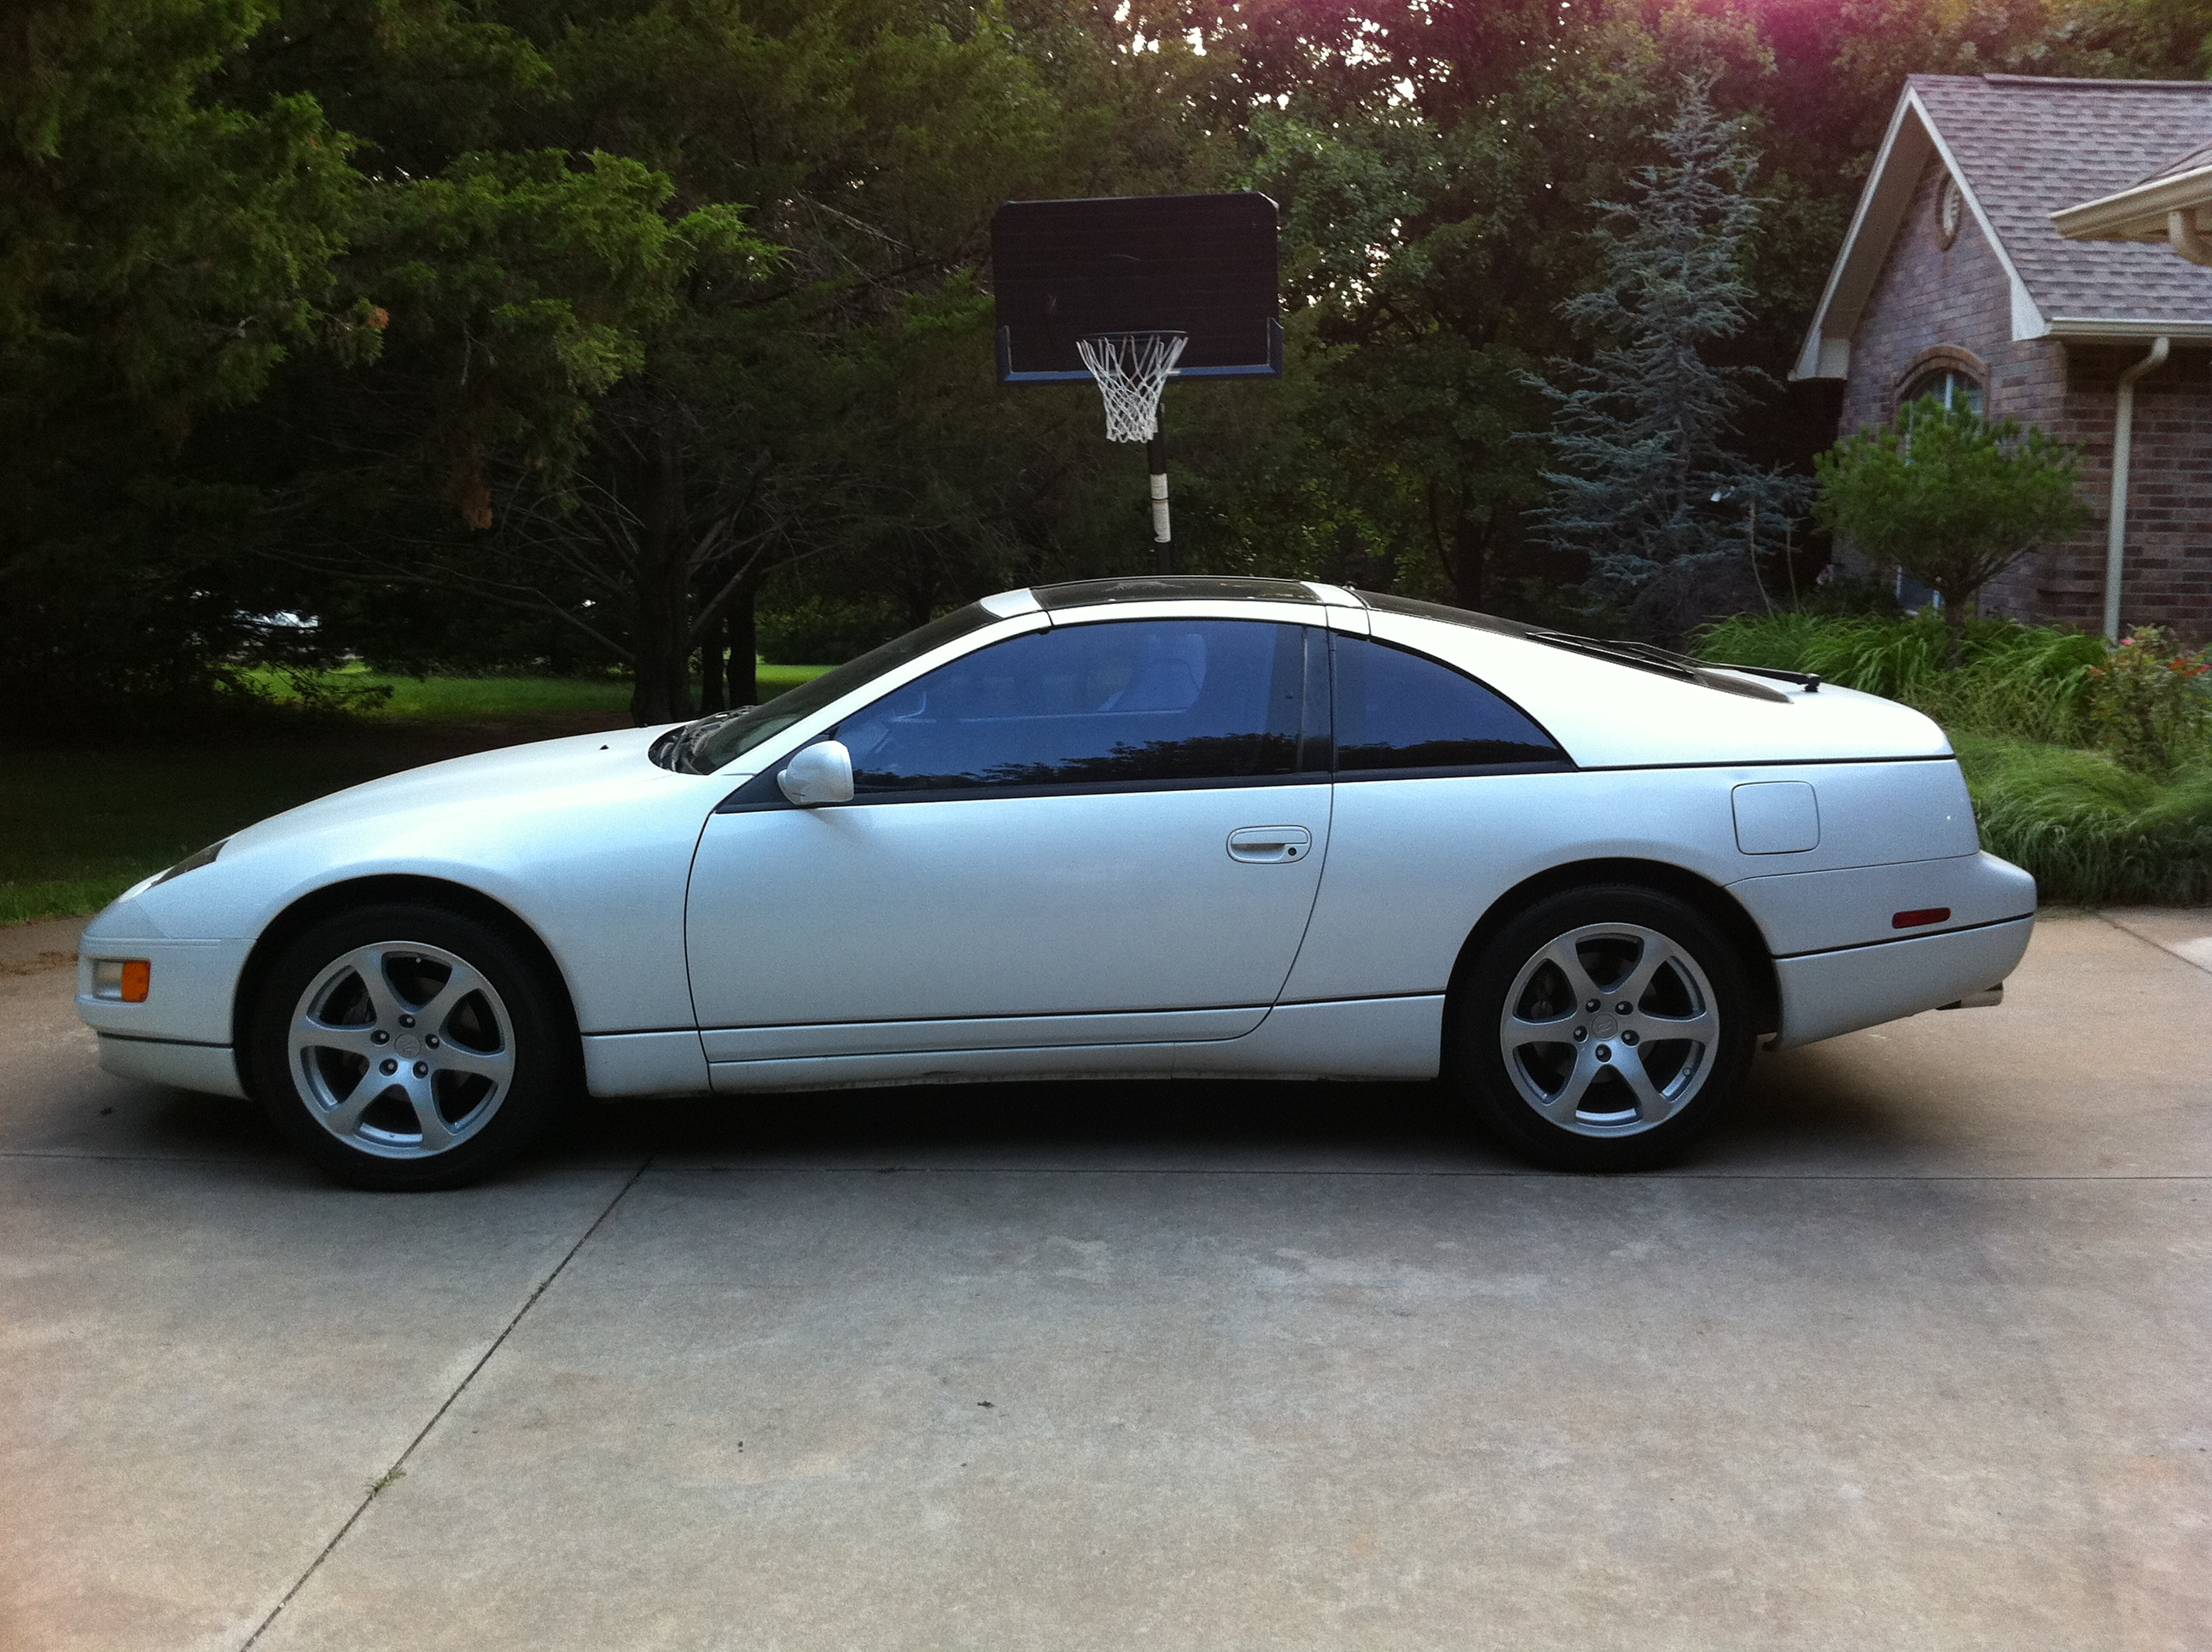 Finally A Cosmetic Enhancement Upgraded 300zx To G35 Wheels